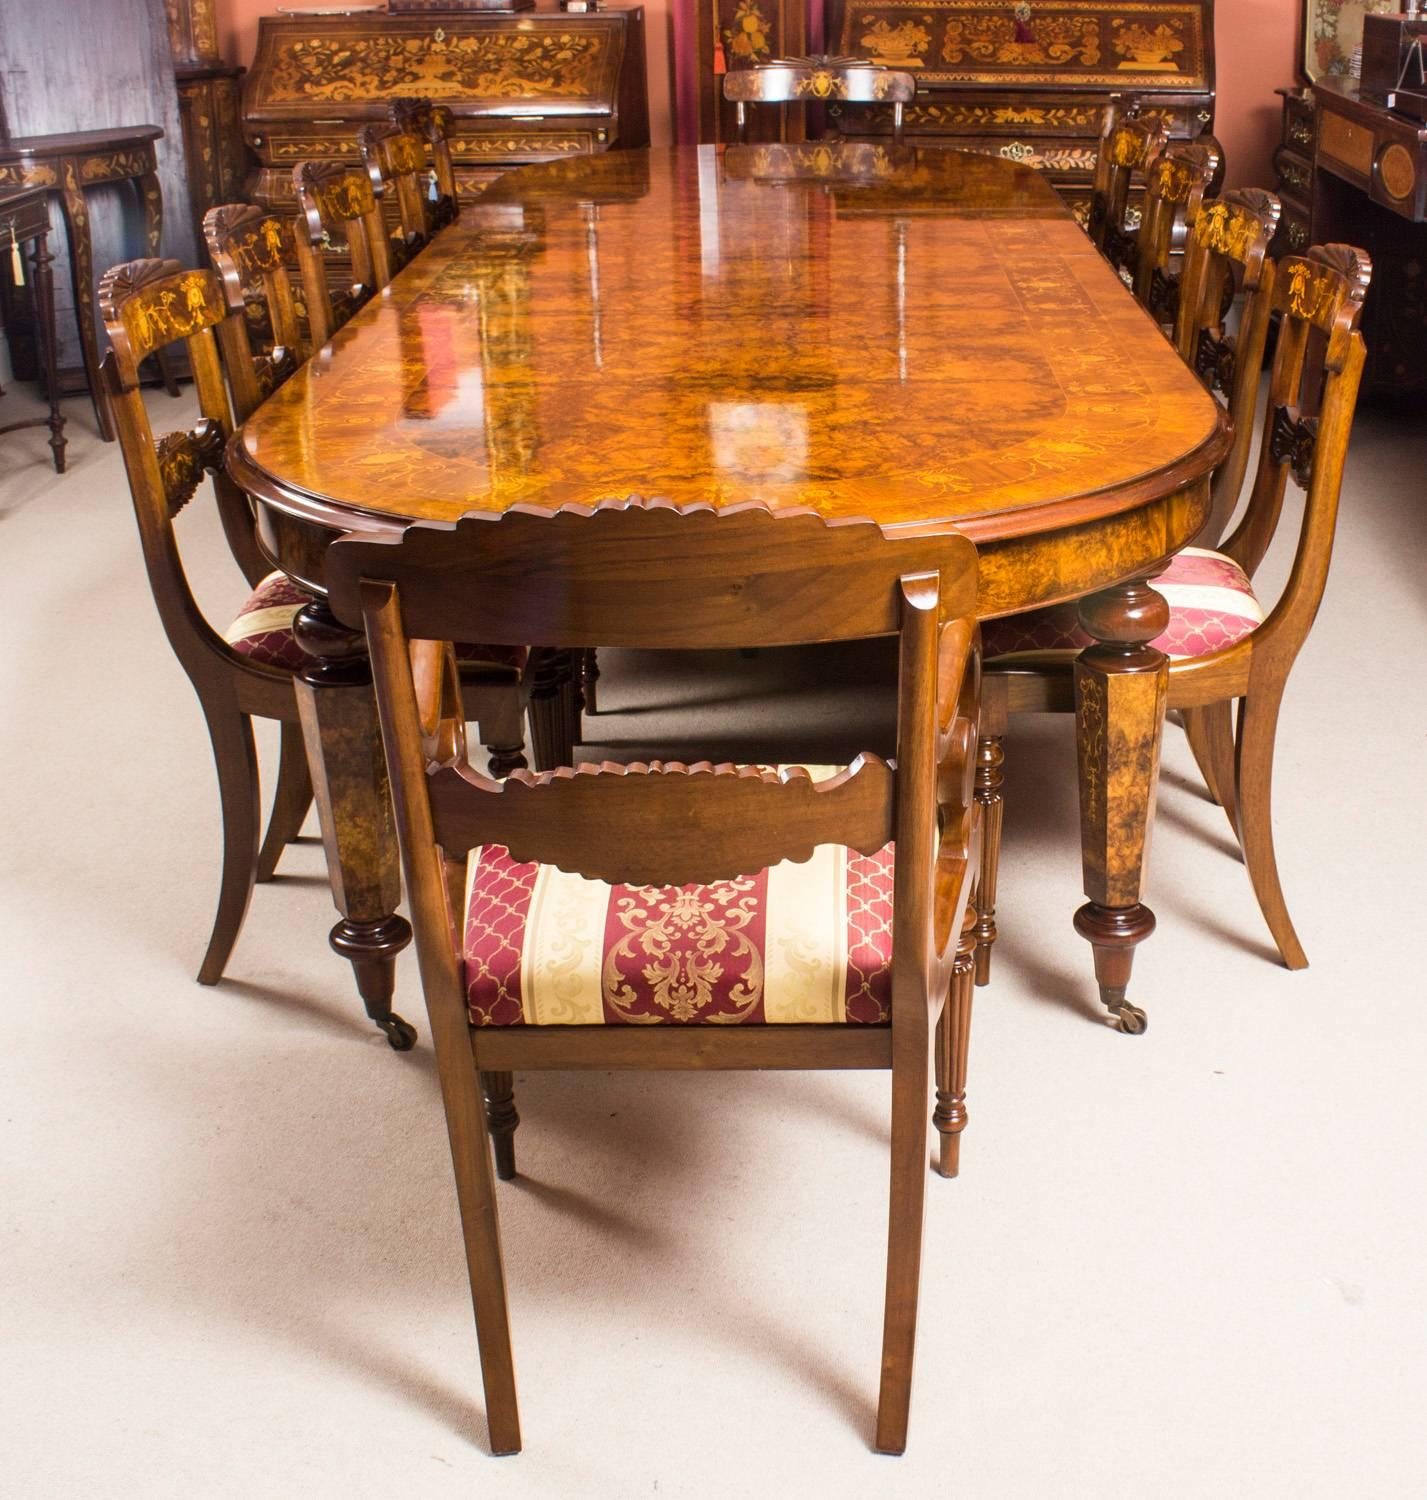 Bespoke Handmade Burr Walnut Marquetry Dining Table and 12 Chairs at ...